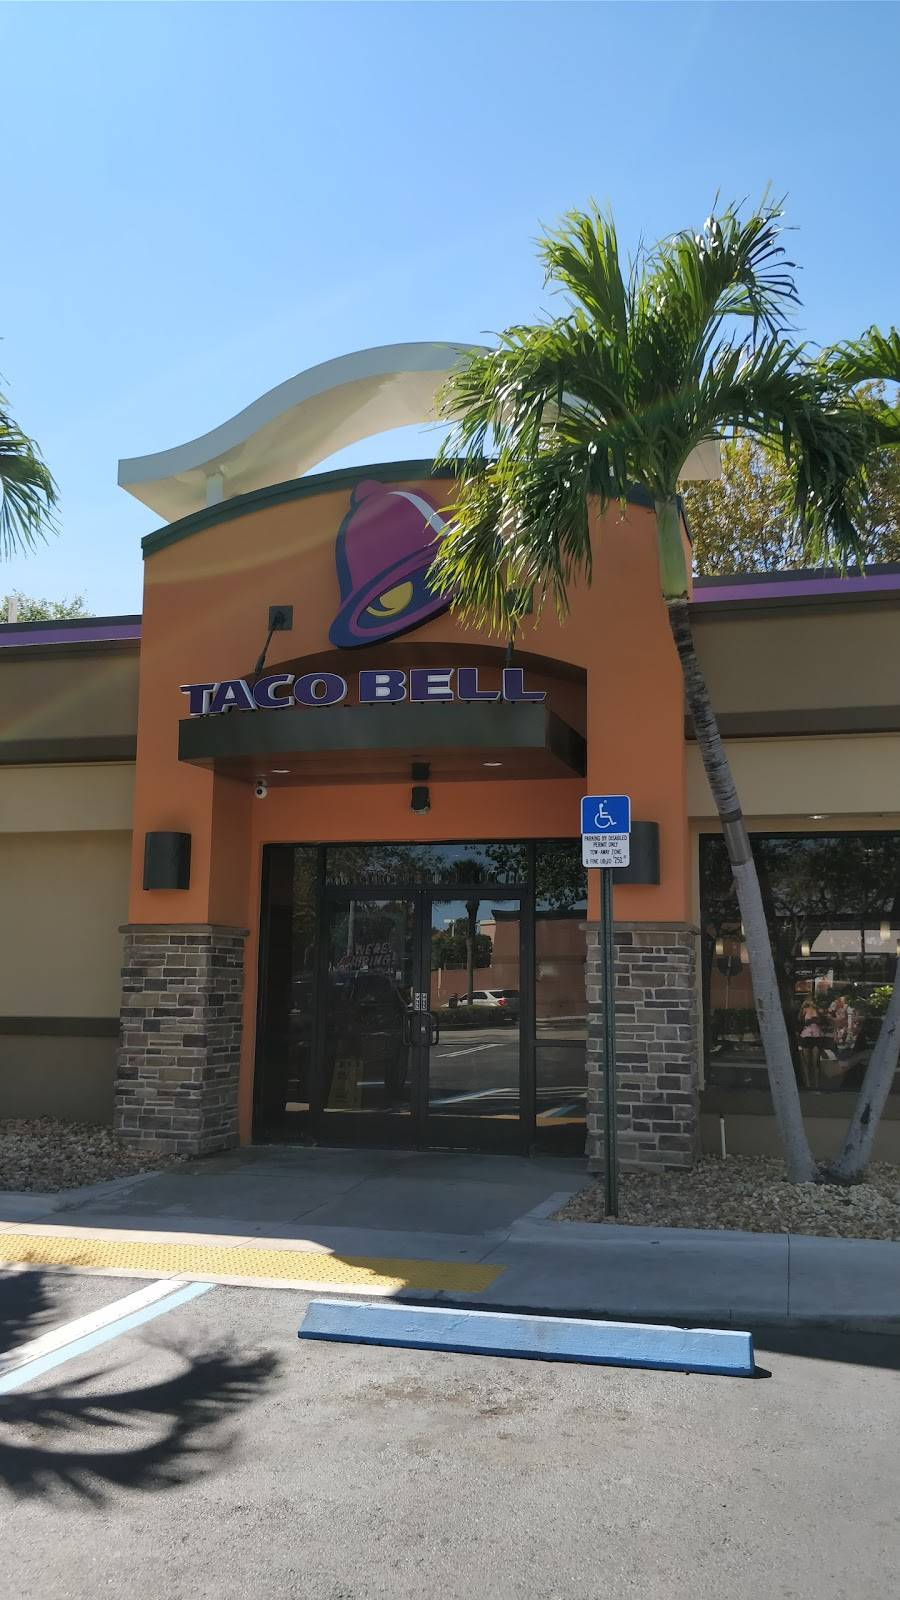 Taco Bell | meal takeaway | 13550 SW 152nd St, Miami, FL 33177, USA | 3052546141 OR +1 305-254-6141